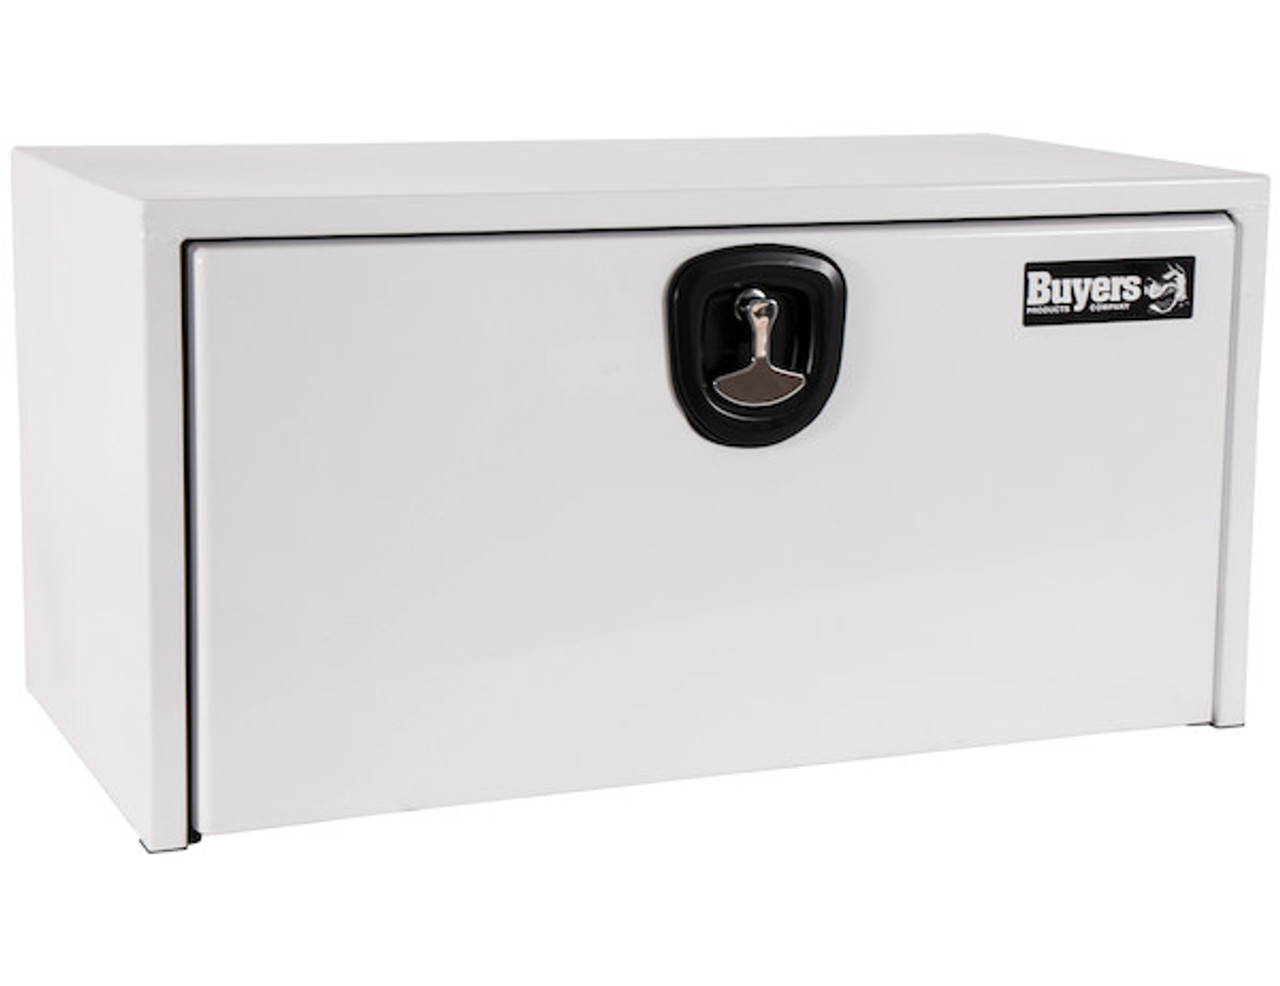 """1732403 BUYERS PRODUCTS WHITE STEEL UNDERBODY TRUCK TOOLBOX WITH 3-POINT LATCH 18""""Hx18""""Dx30""""W"""